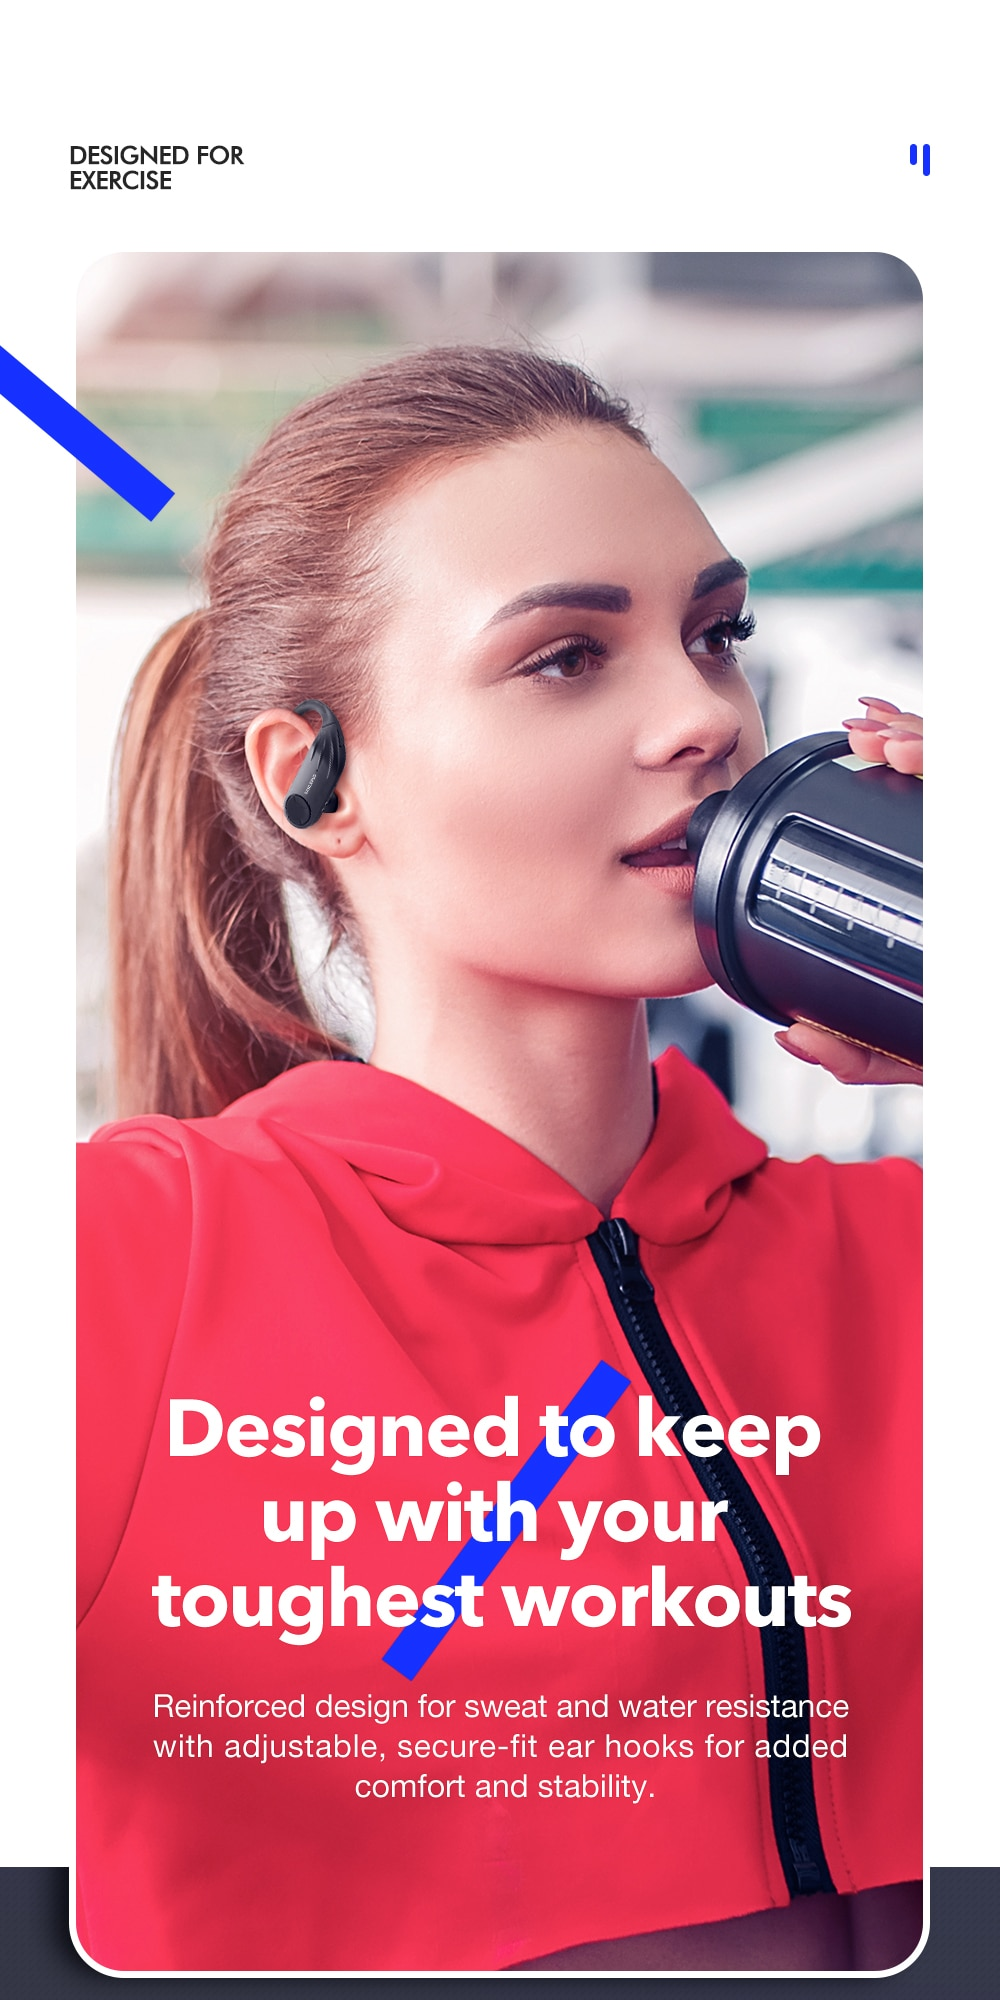 SANLEPUS Bluetooth Earphone TWS 5.0 Led Display Wireless Earbuds Stereo Headphones for Xiaomi in Ear Phone Gaming Sport Headset